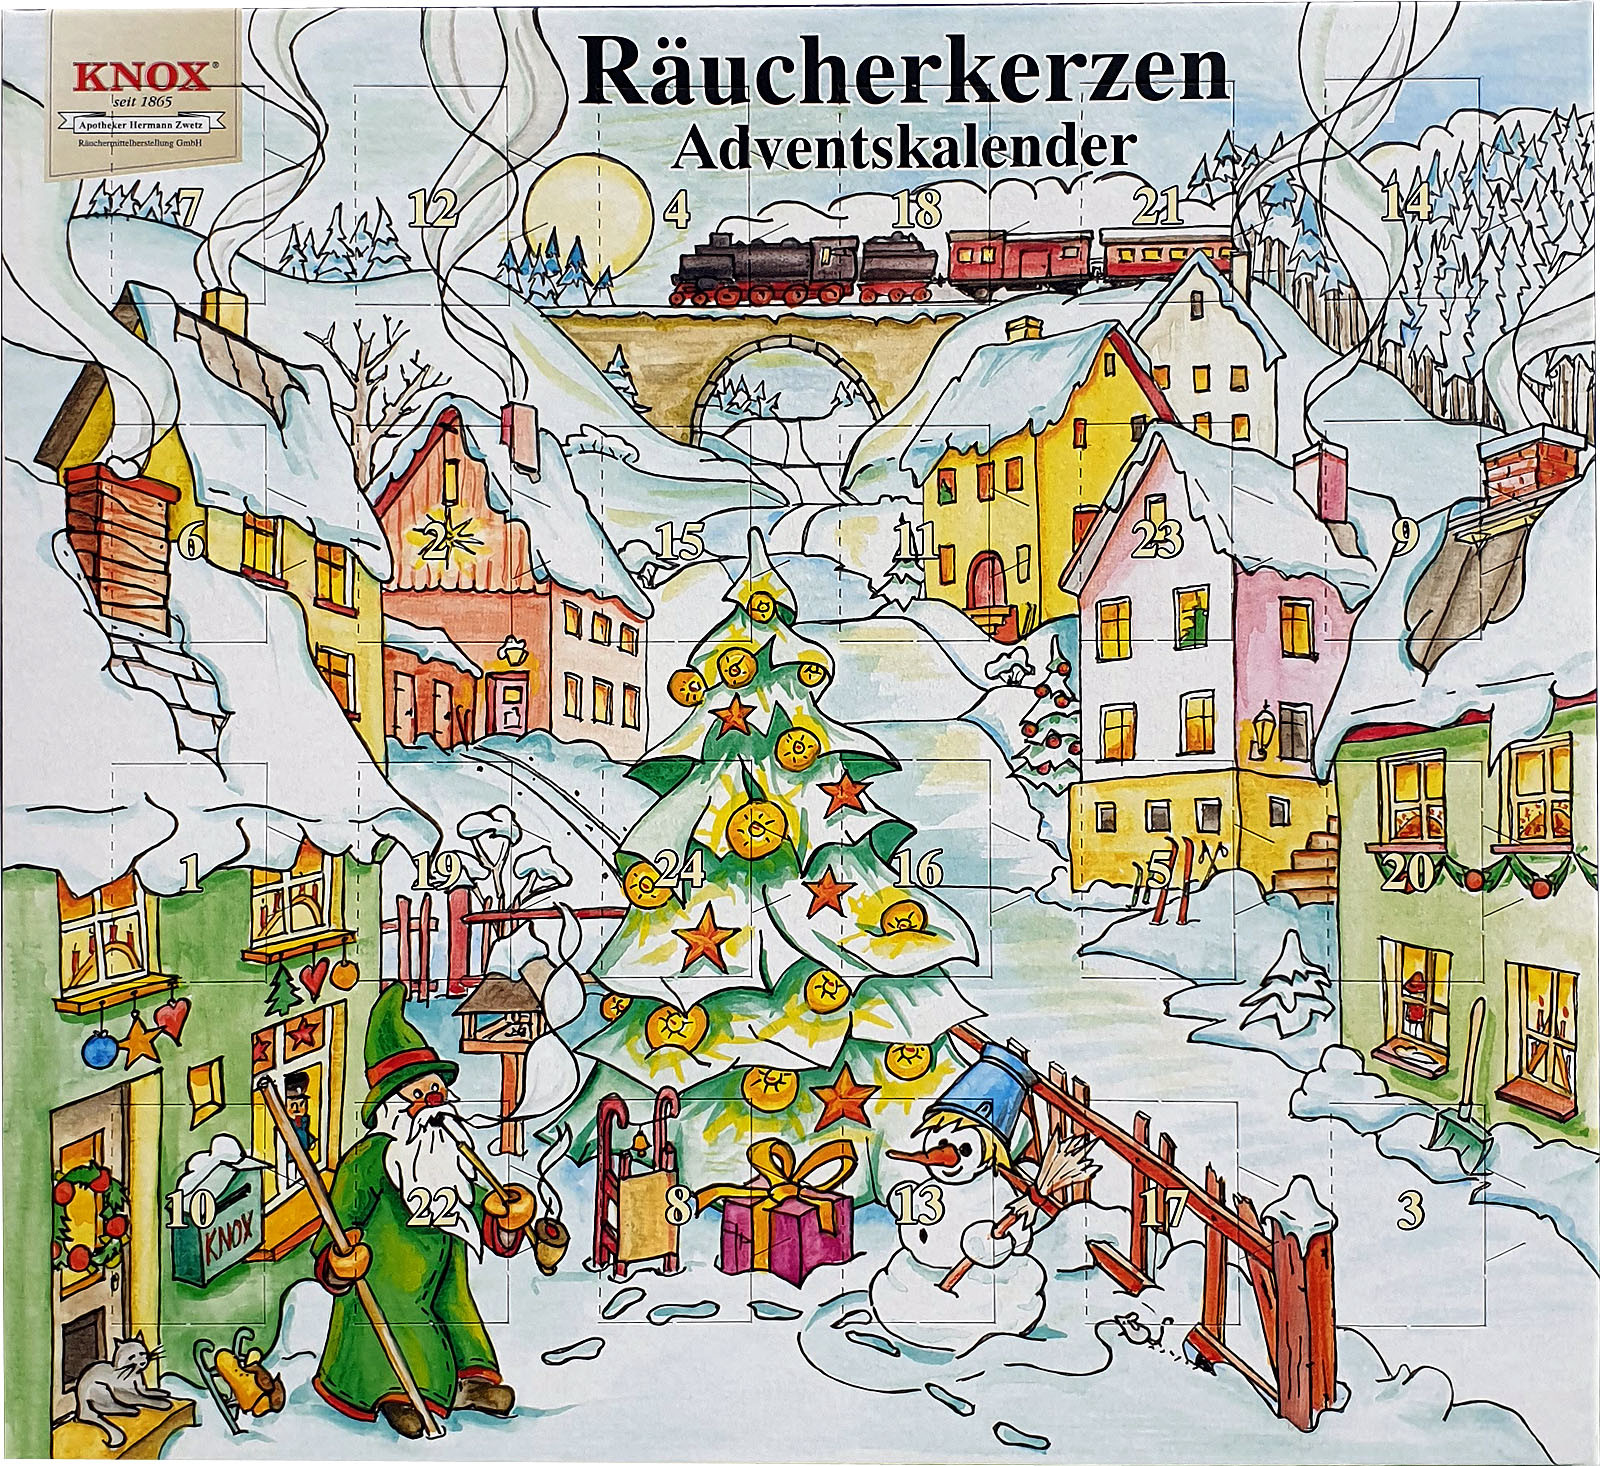 KNOX Räucherkerzen-Adventskalender 2019